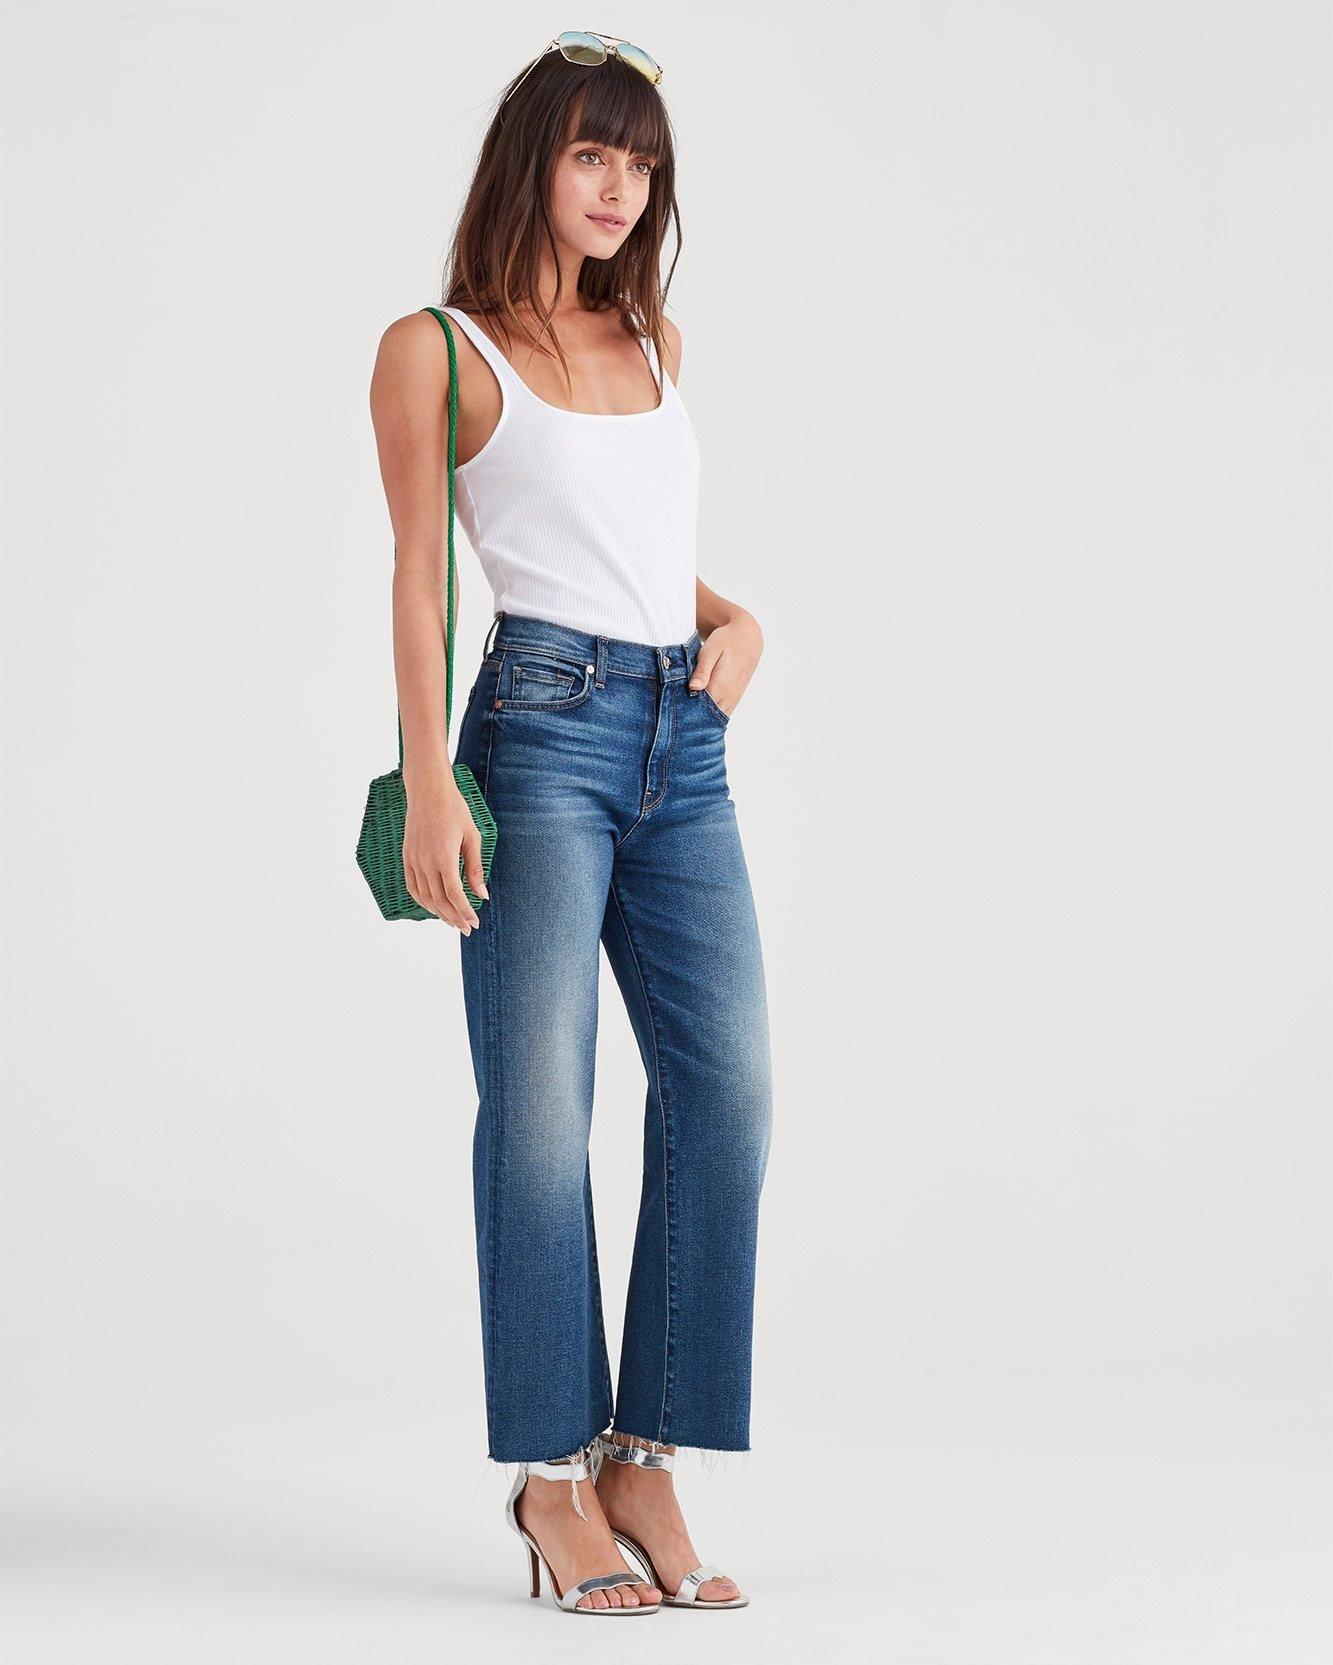 bab5ce5ef0 Lyst - 7 For All Mankind Luxe Vintage Cropped Alexa With Cut Off Hem In  Femme in Blue